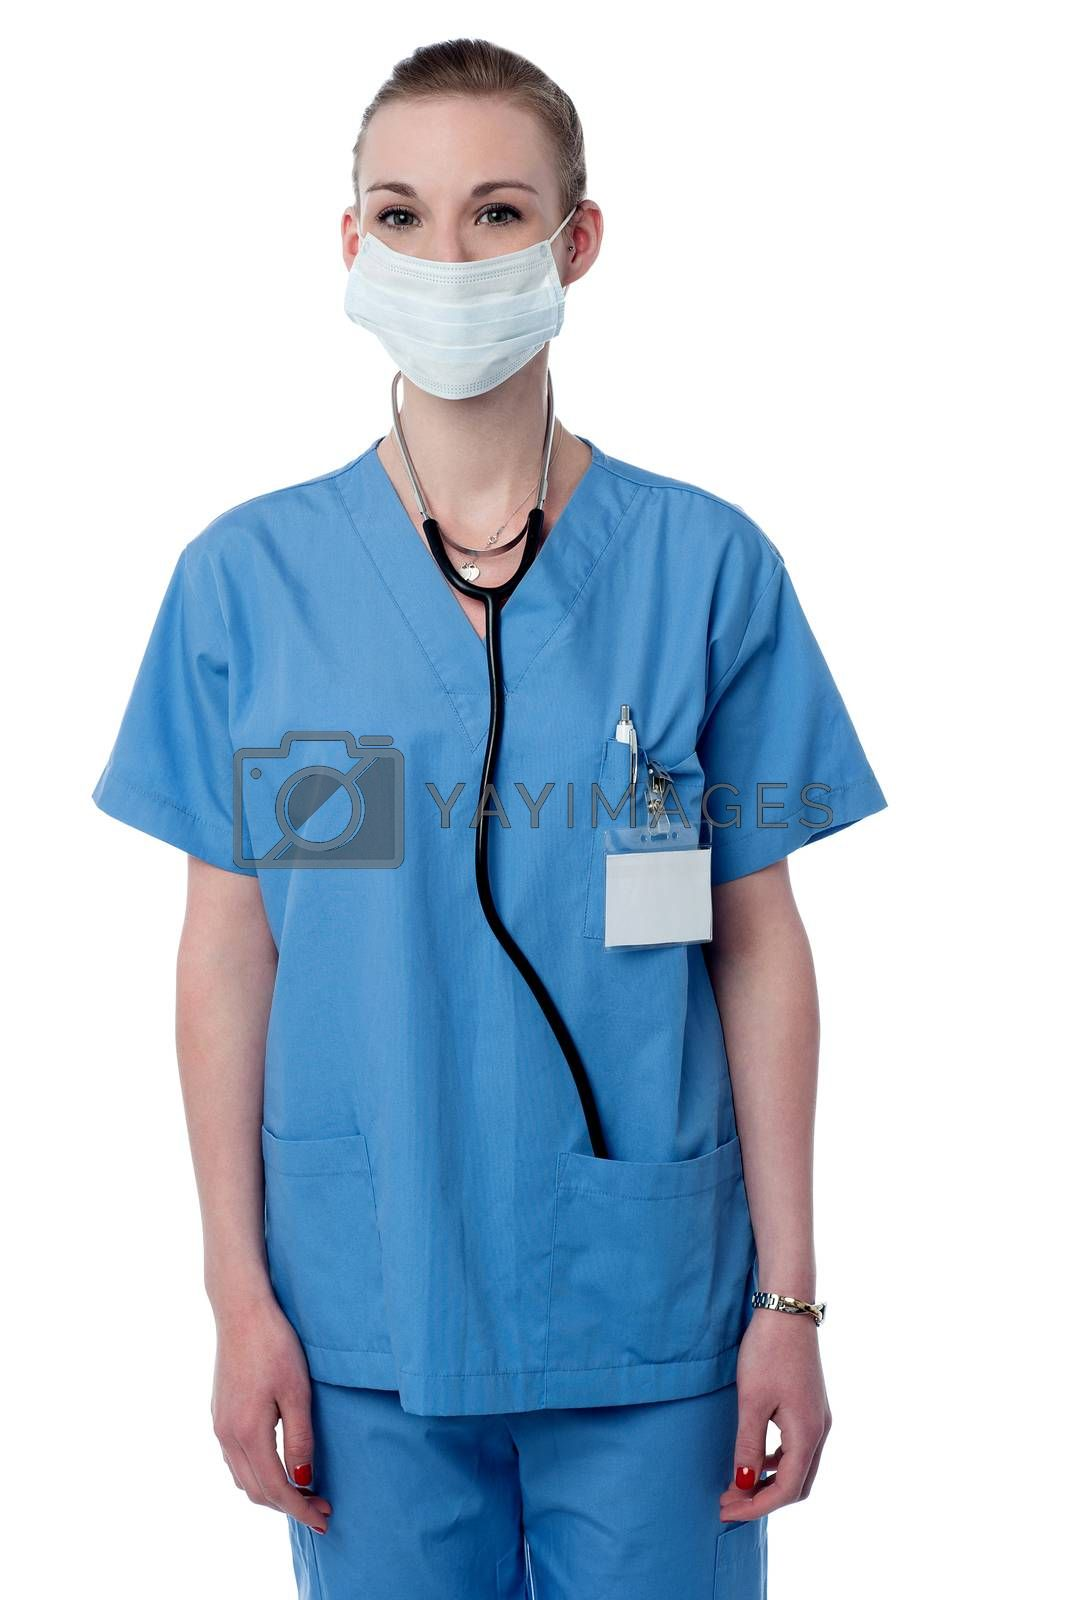 Female surgeon posing with face mask